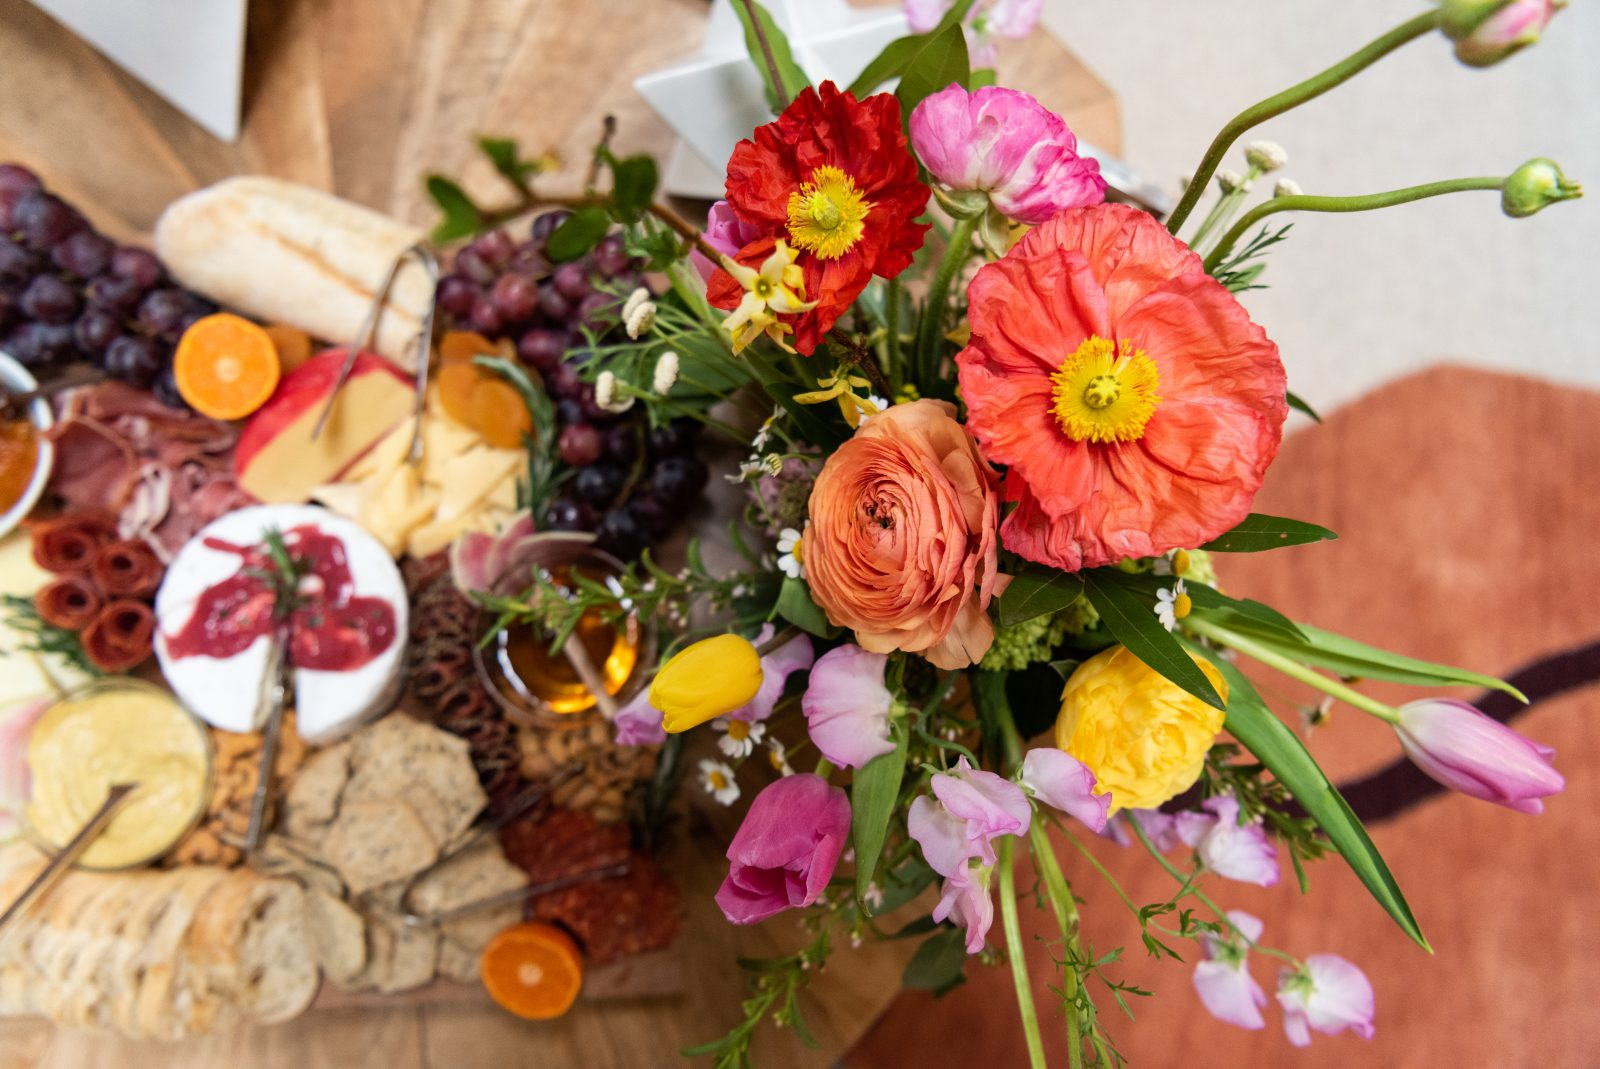 Flowers and charcuterie board